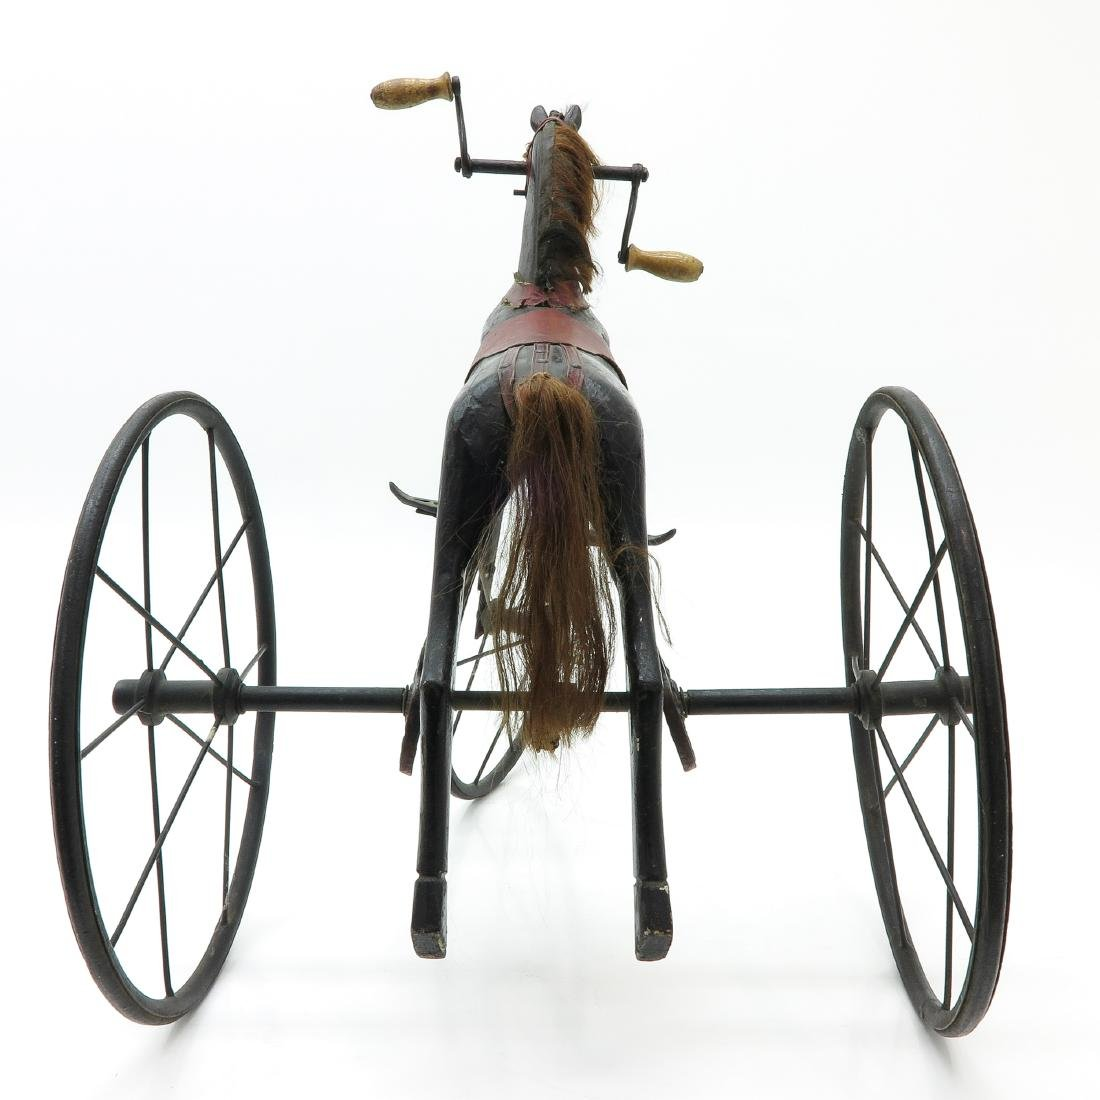 A Nice Antique French Toy Horse on Wheels Circa 1880 - 4